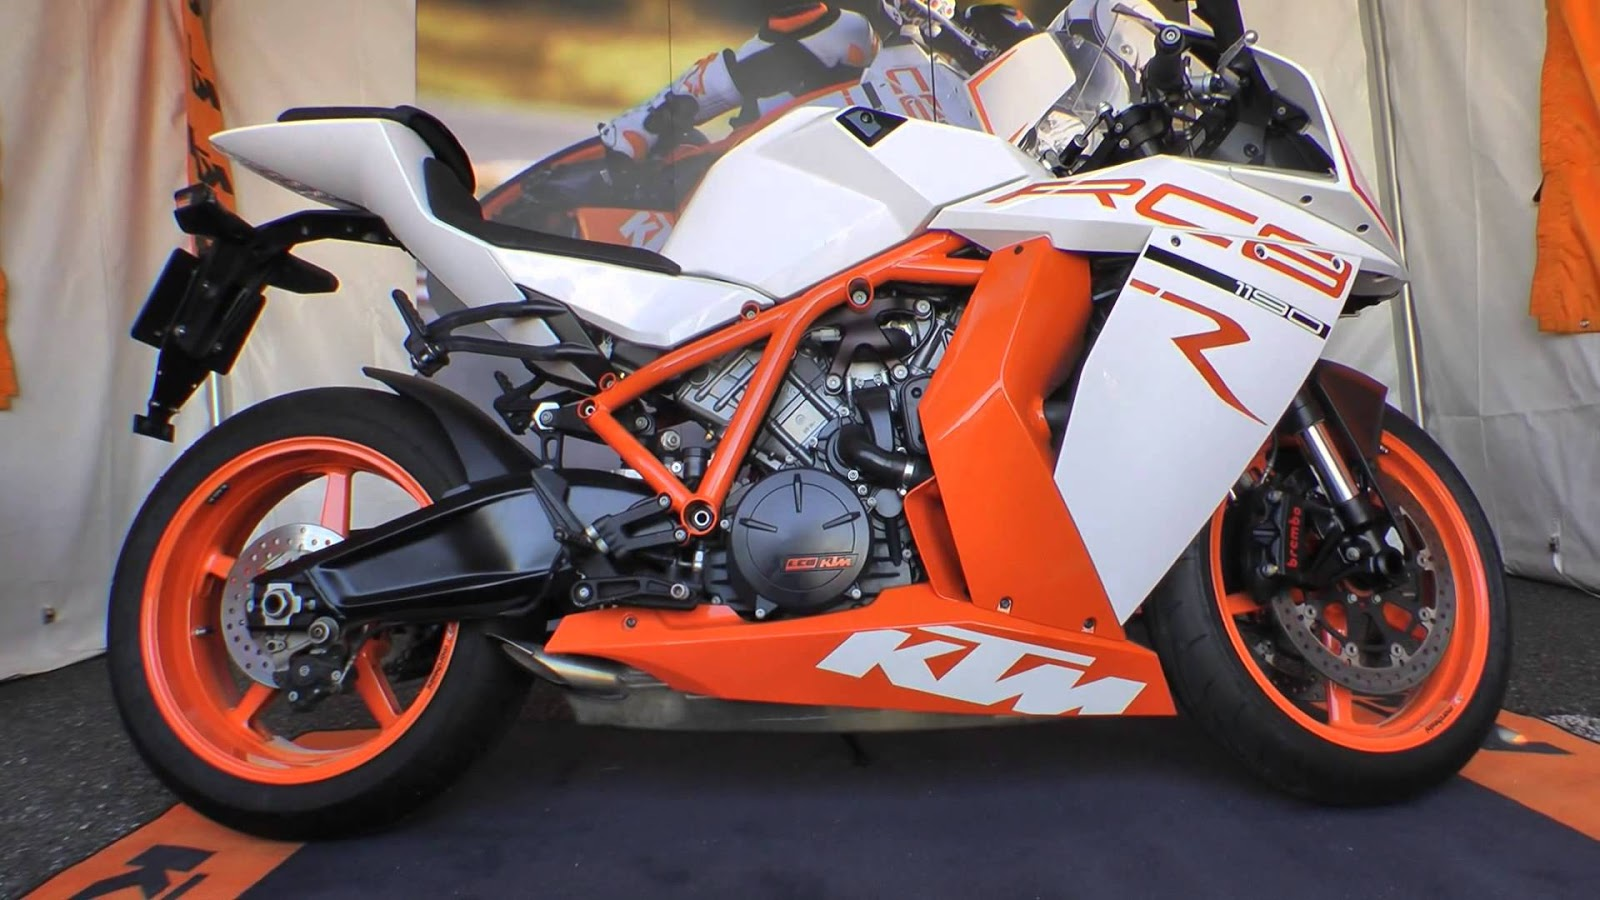 Hd wallpaper all - Inr Price Rs 20 00 000 Lakh This Bike Hd Images Hd Pictures And Hd Photos Are Free Hd Wallpapers All Device Download Widescreen Use Free Pics Here